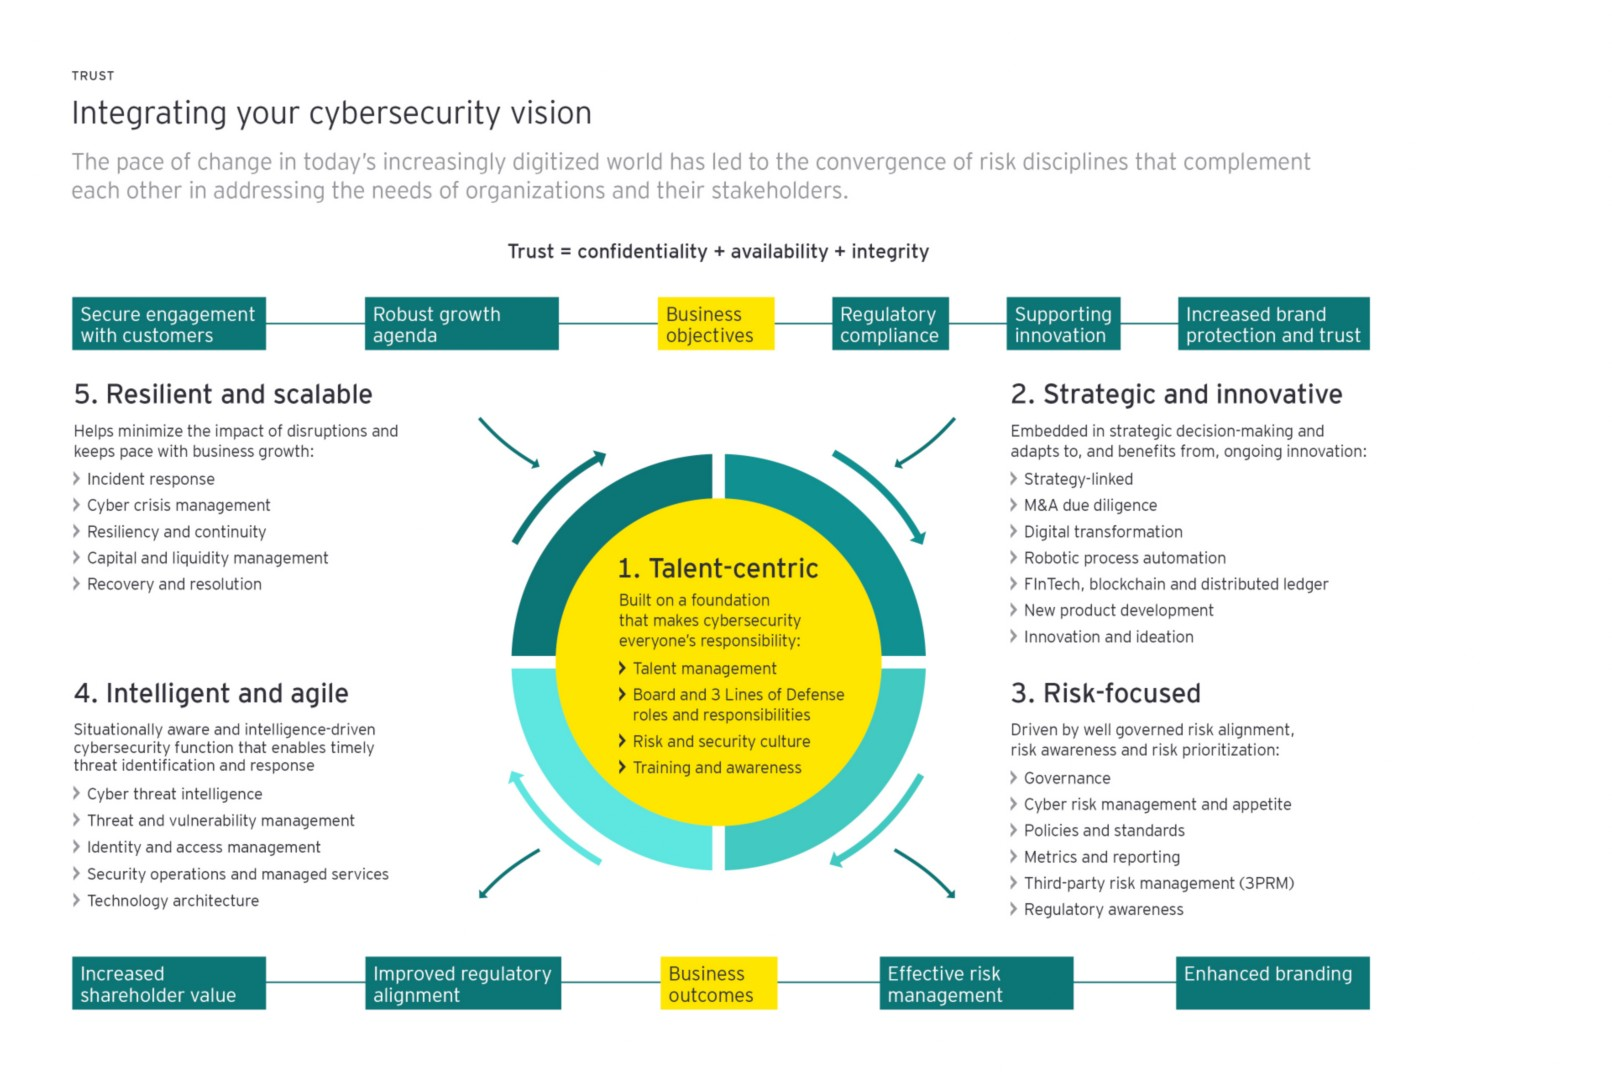 an integrated vision to manage cyber risk